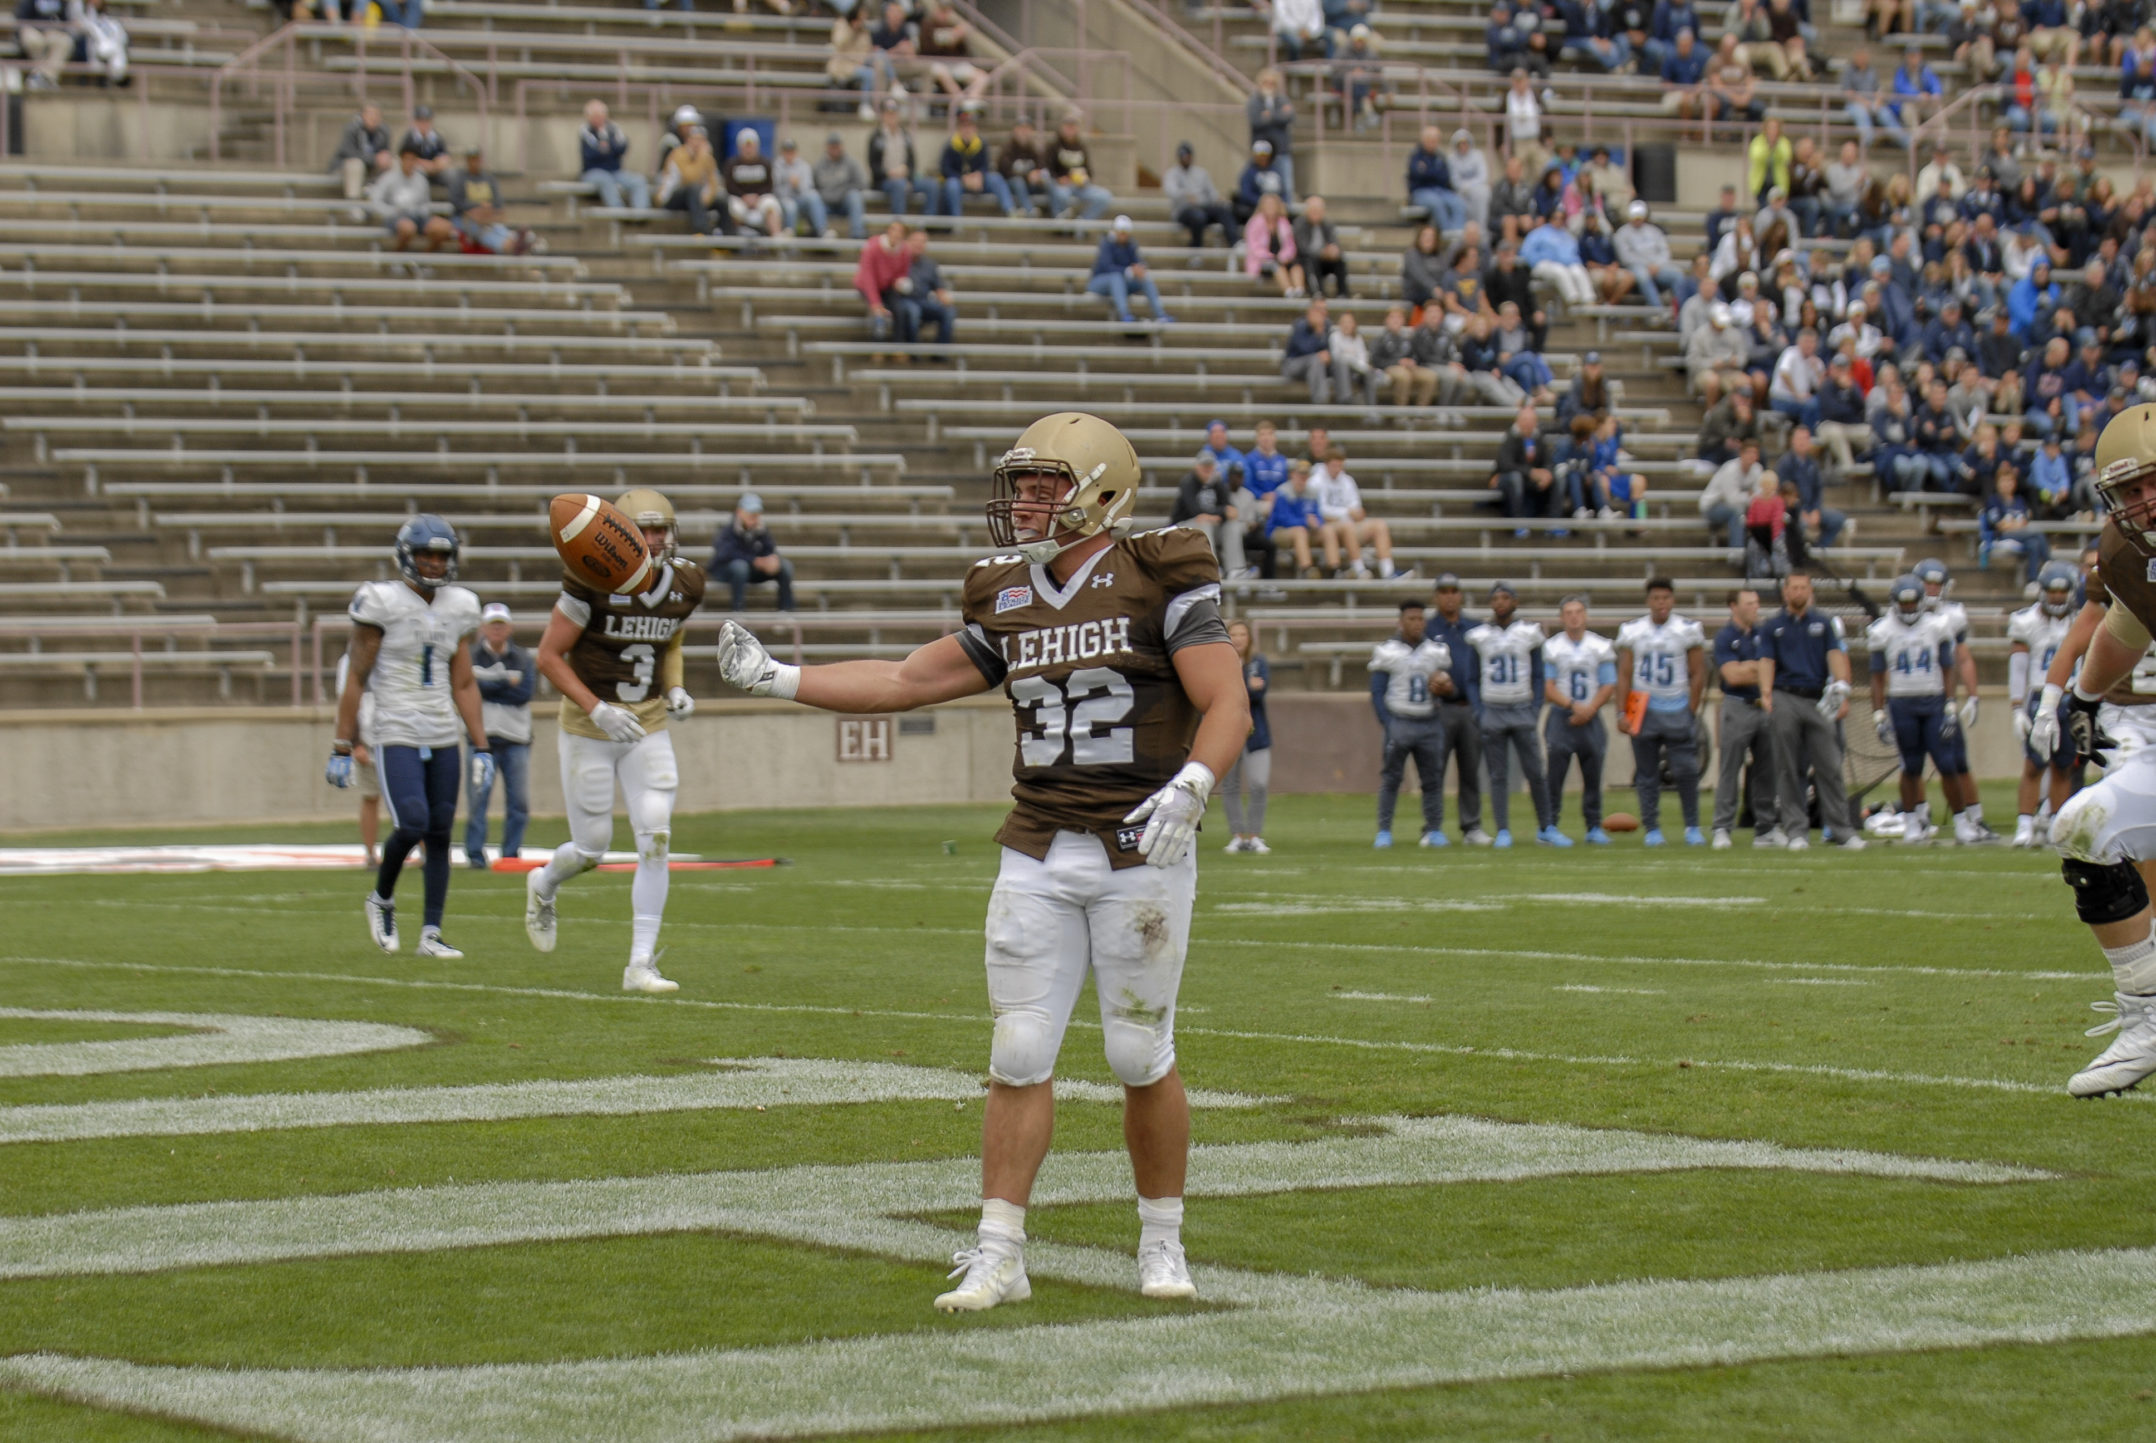 Lehigh Mountain Hawks junior running back Dominick Bragalone celebrates his rushing touchdown during Lehigh's loss against Villanova on Saturday, Sept. 2, 2017 at Goodman Stadium. Bragalone ran for 82 yards and one touchdown. (Andy Bickel/B&W Staff)